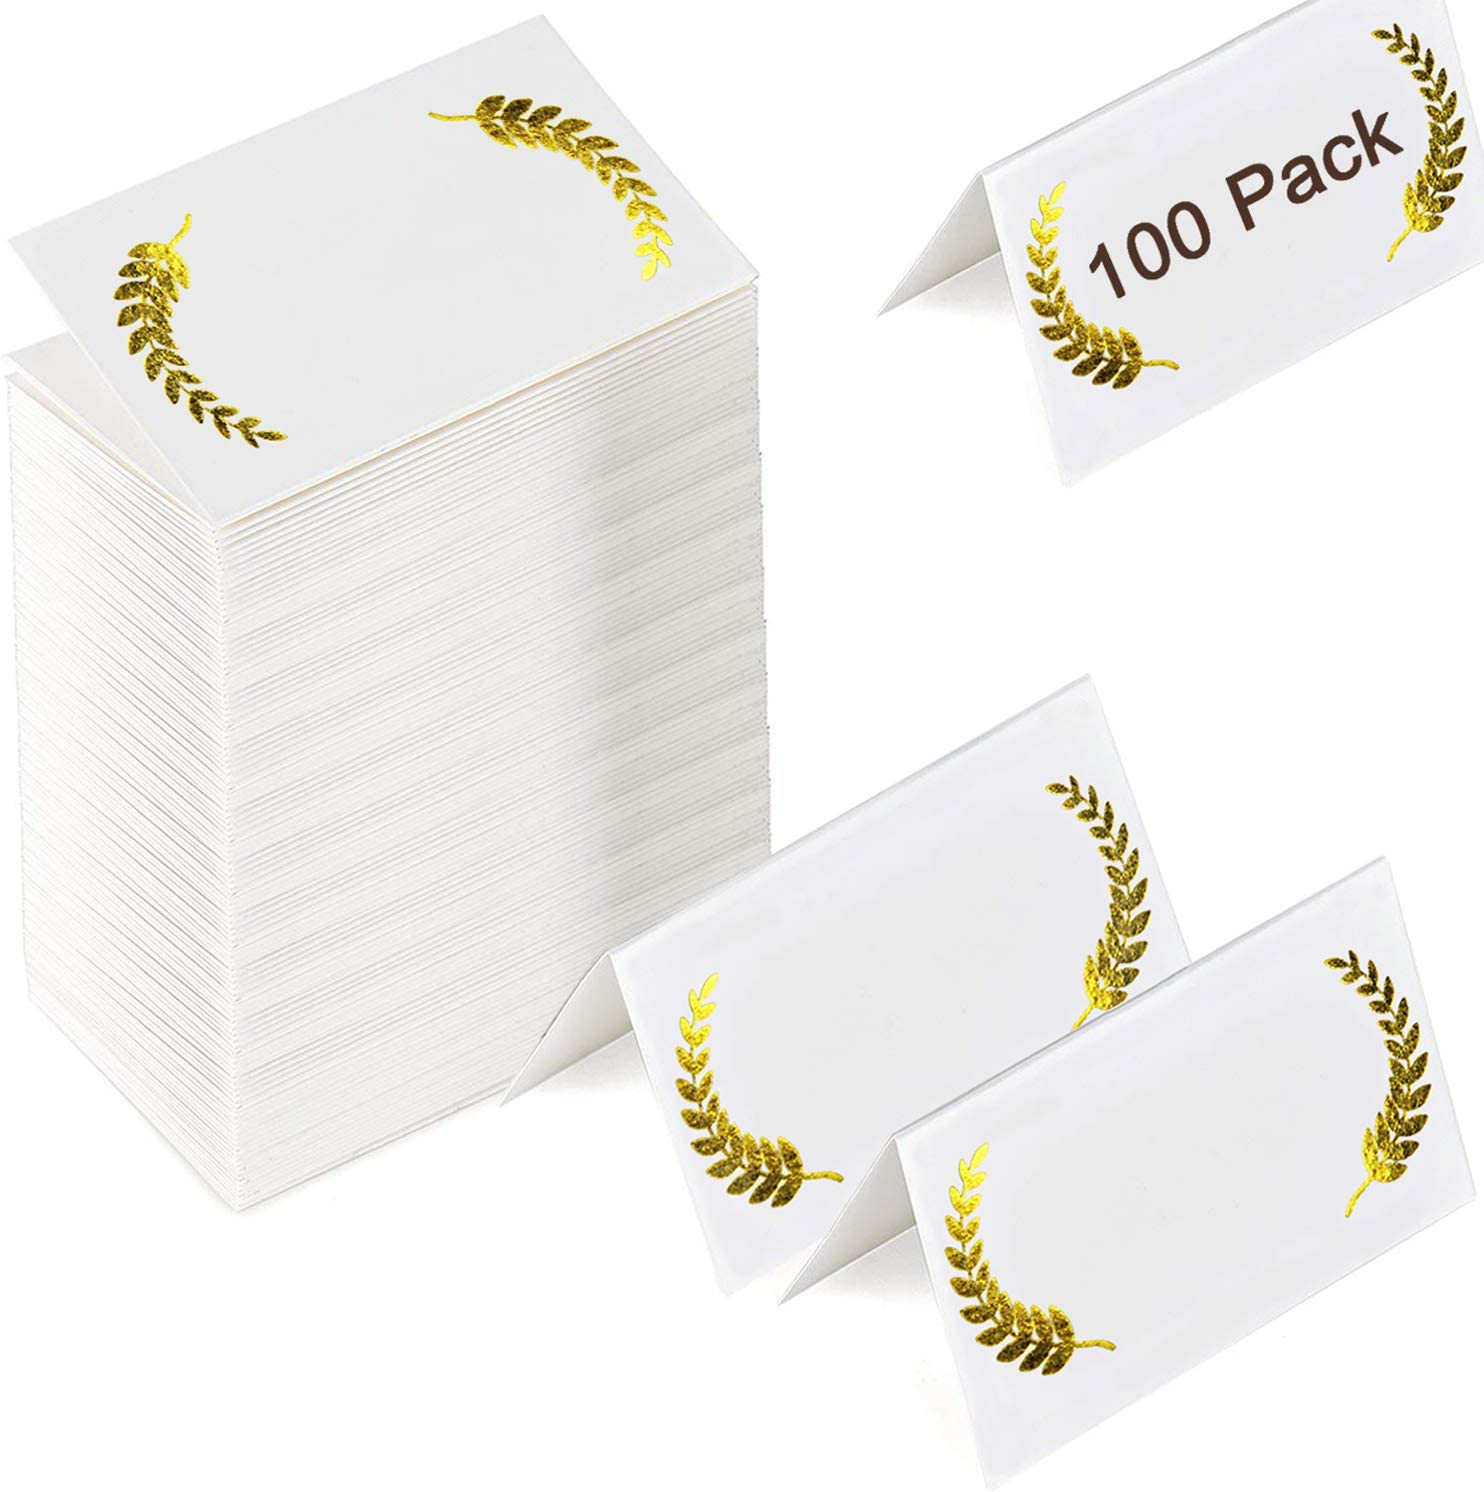 Pack of 100 Place Cards with Gold Laurel Leaves-Perfect for Weddings, Banquets, Events,Blank Table Tent Cards Table Name Tags Table Card Seating Cards Buffet Table Cards Events 2 x 3.5 Inches